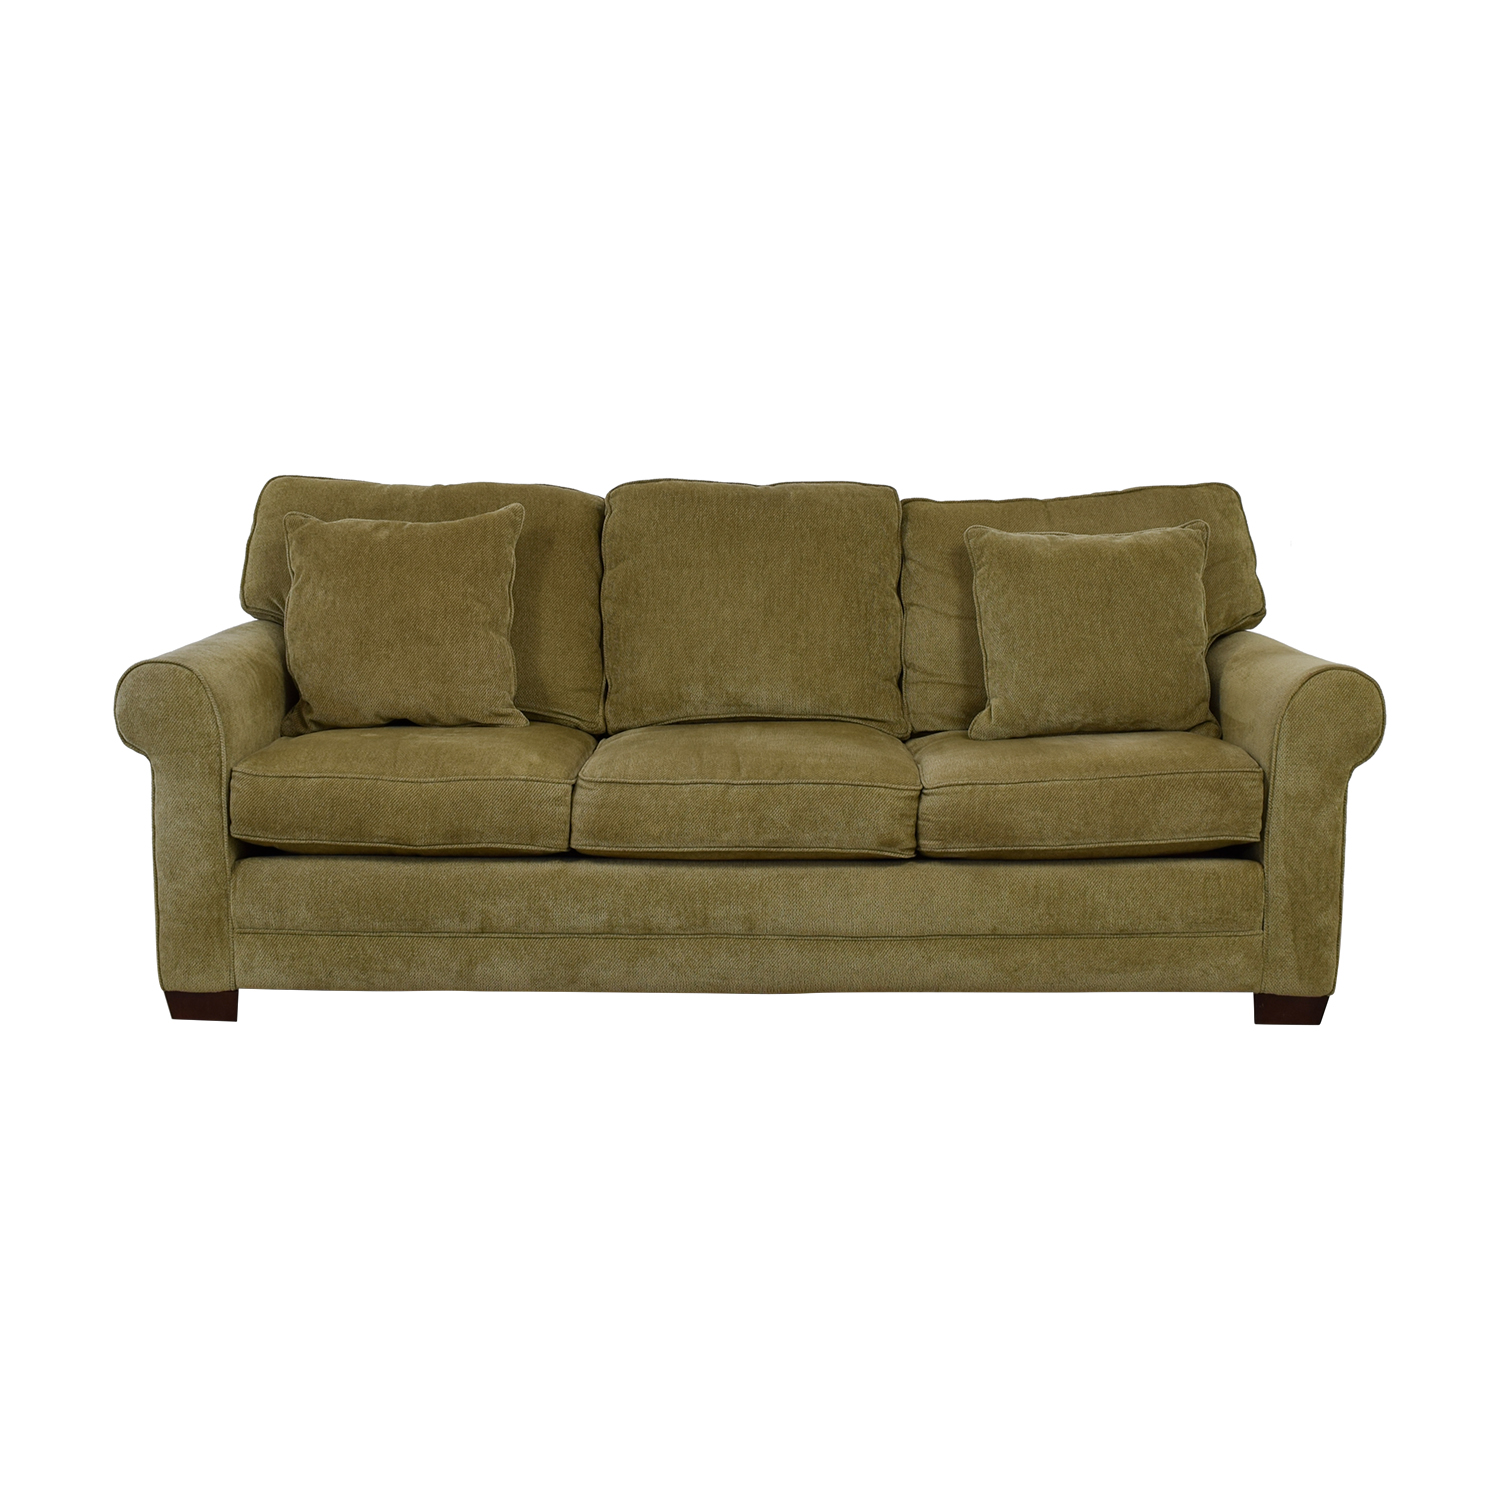 Raymour and Flanigan Raymour & Flanigan Grey Three-Cushion Couch used